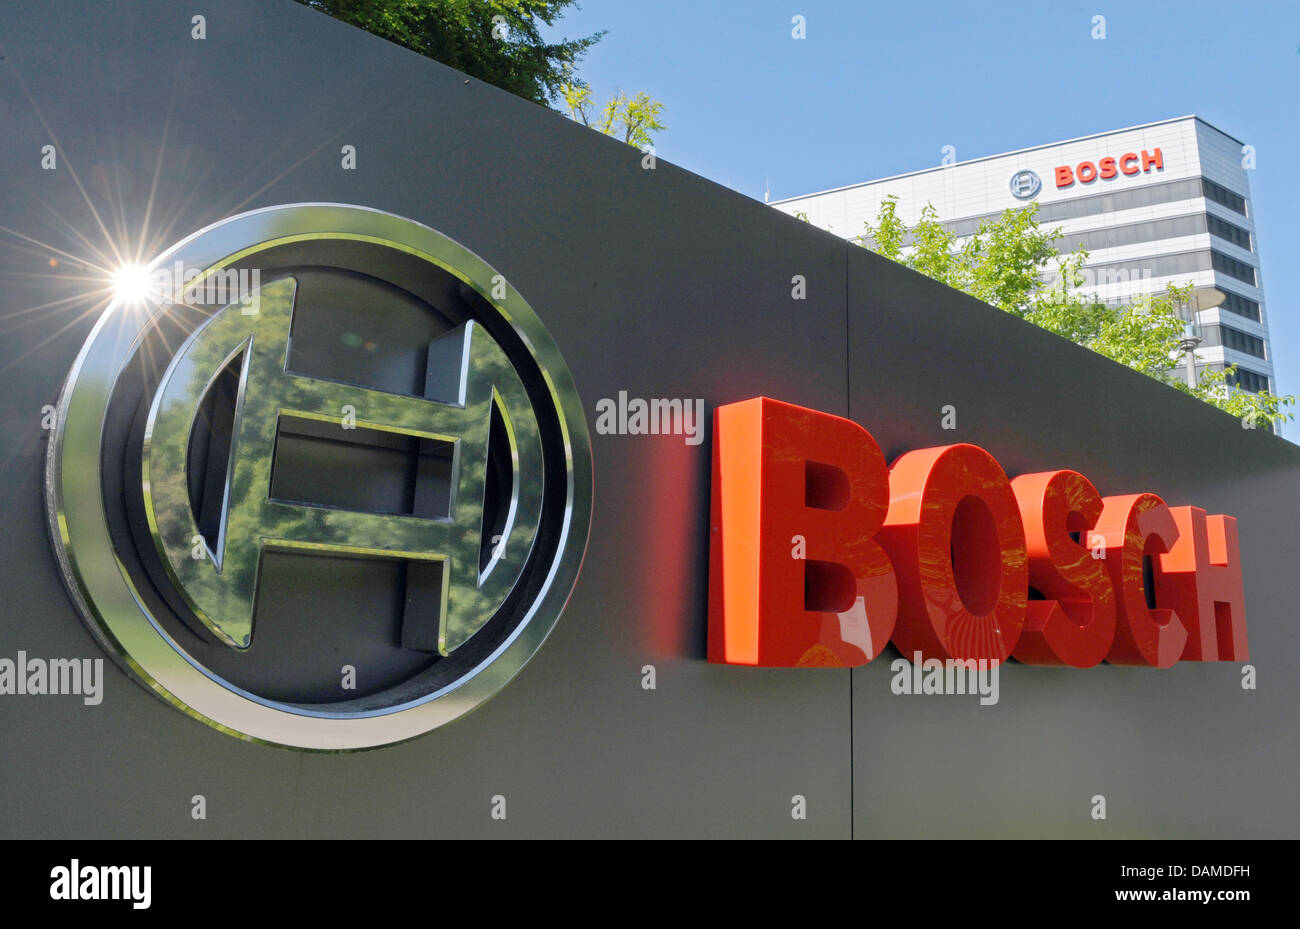 dpa file) - A file picture dated 4 June 2010 of the Bosch logo in